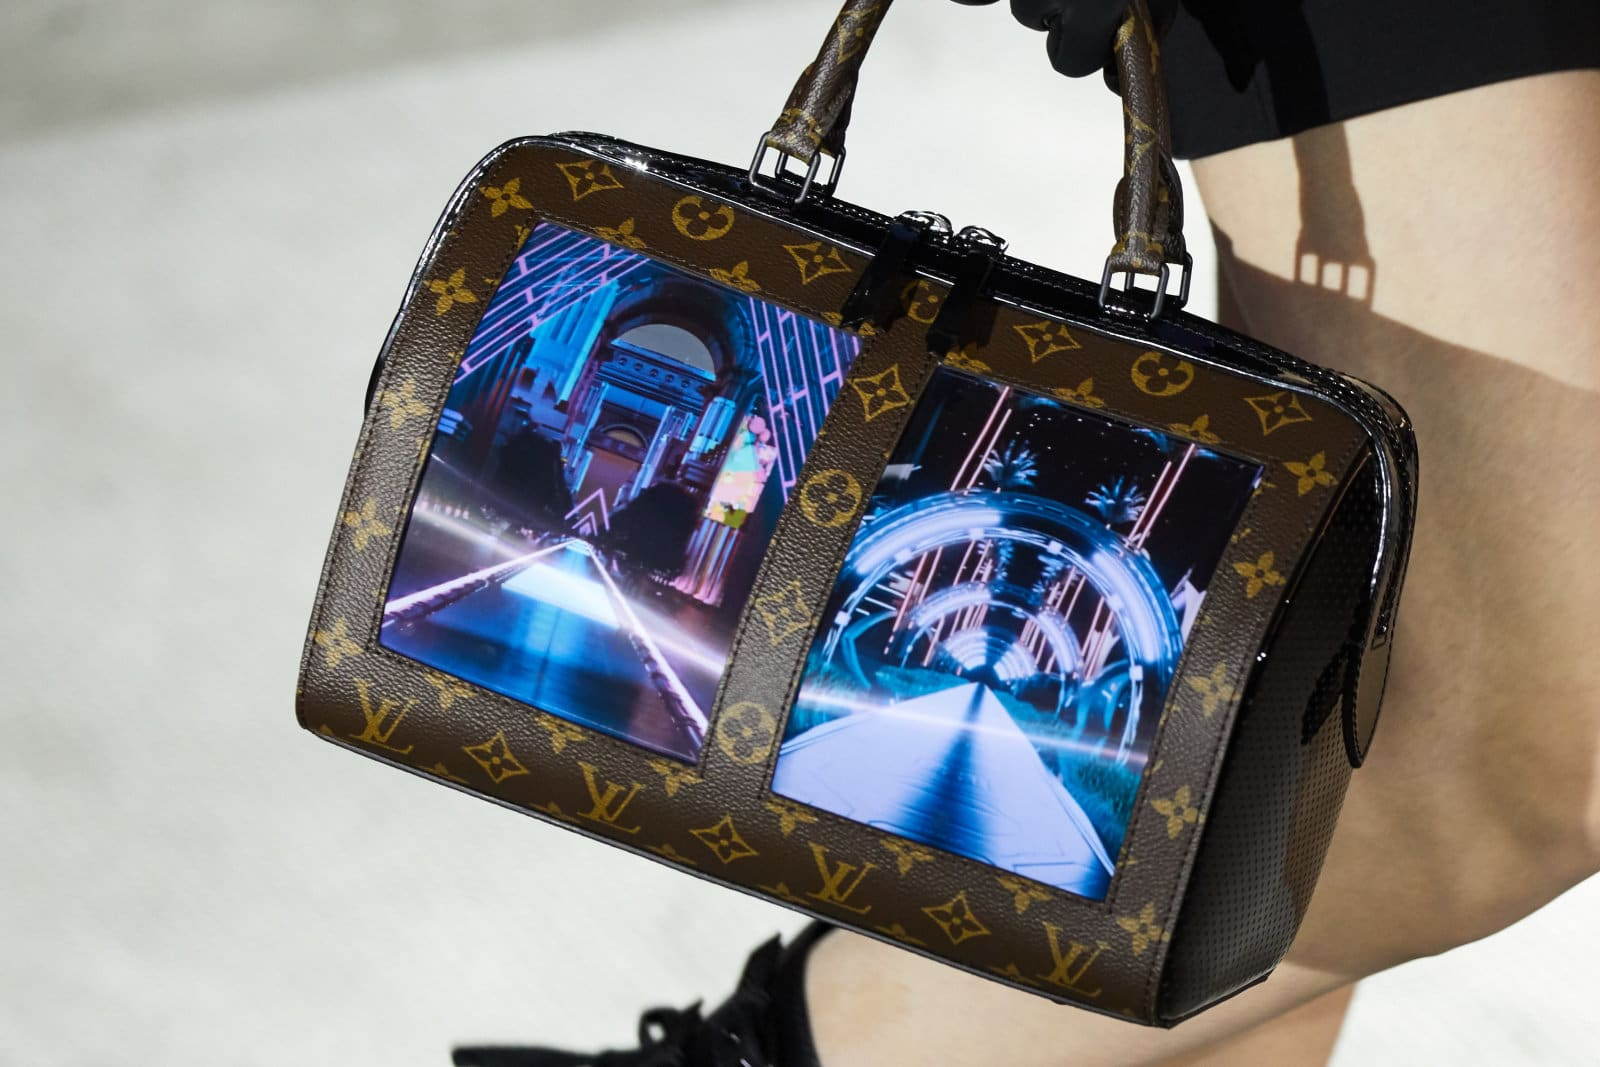 Louis Vuittons flexible-screen handbag